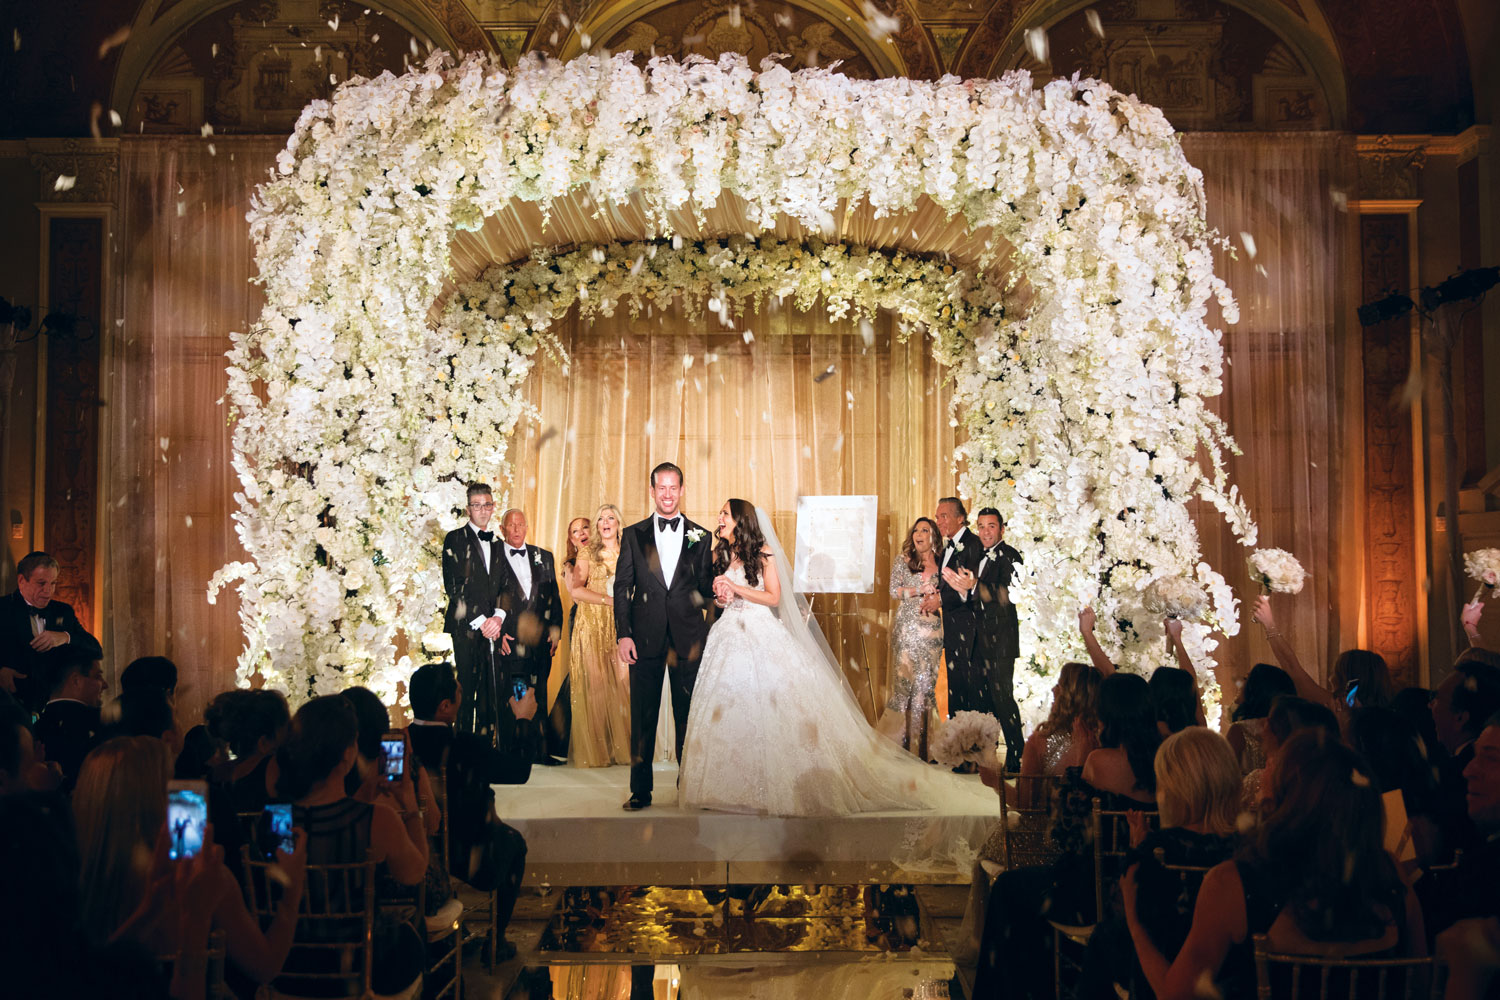 Inside Weddings Summer 2018 issue preview luxury wedding ceremony chuppah